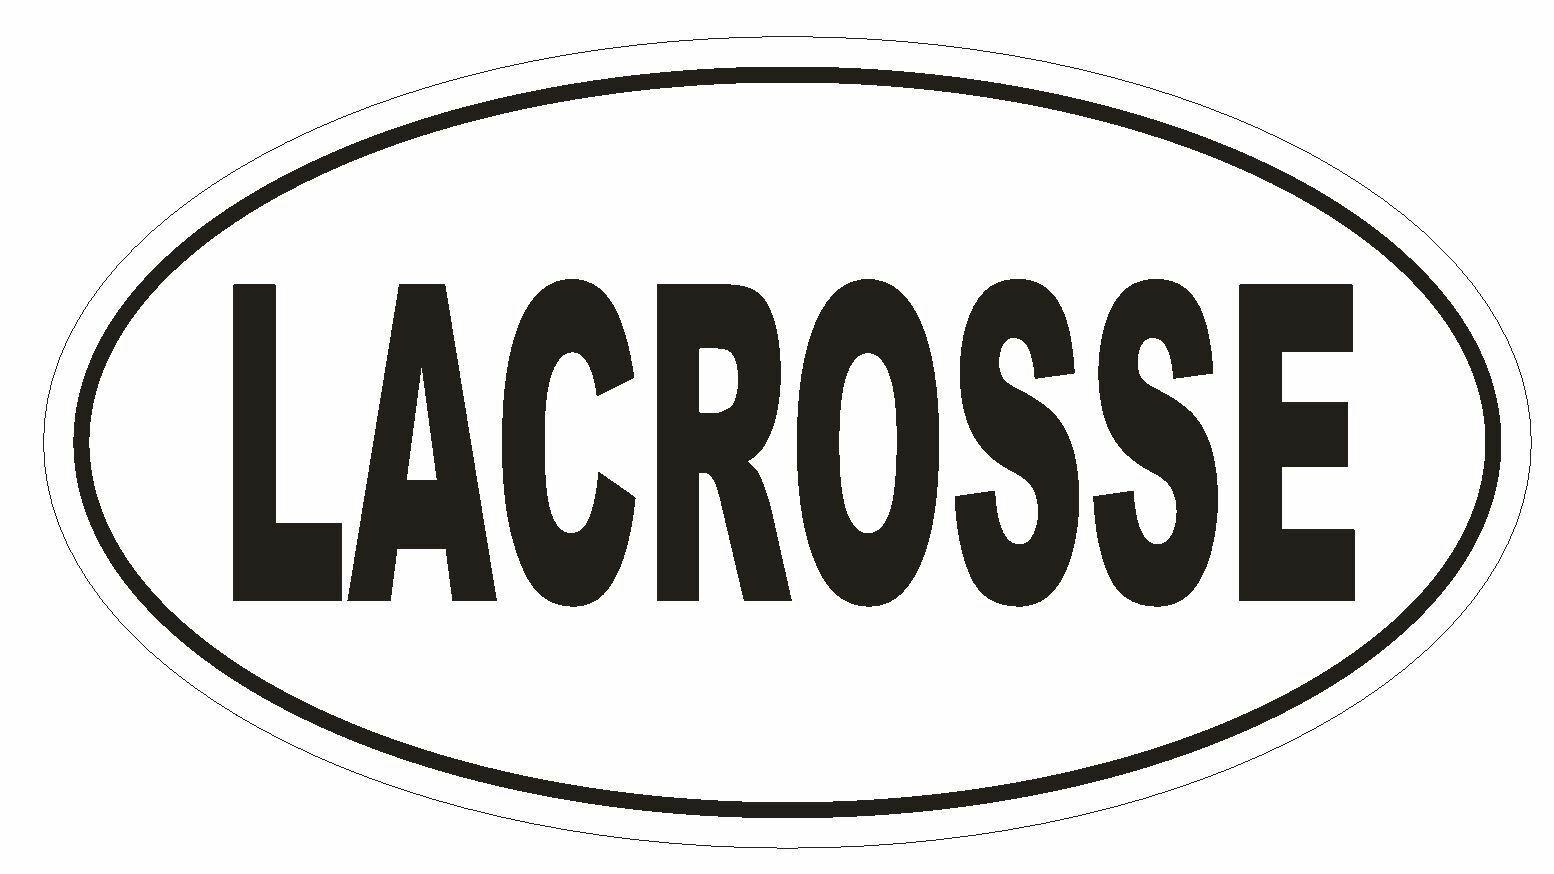 LACROSSE Oval Bumper Sticker or Helmet Sticker D2007 Euro Oval